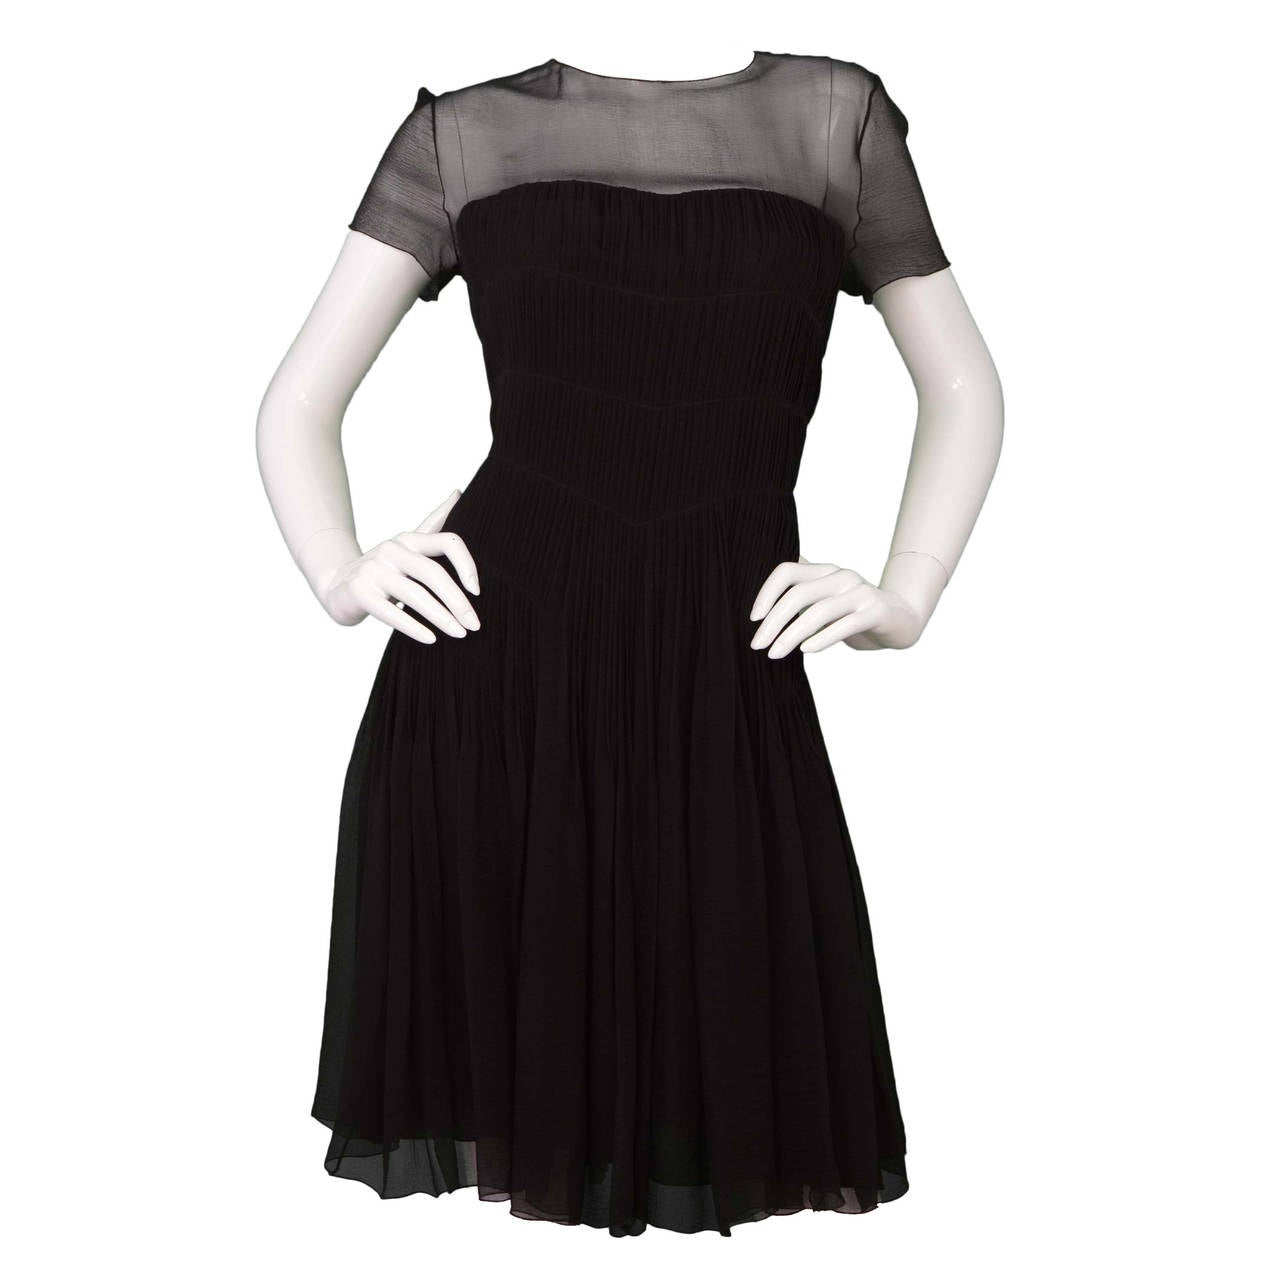 CHANEL Black Silk Short Sleeve Pleated Dress sz 42 1